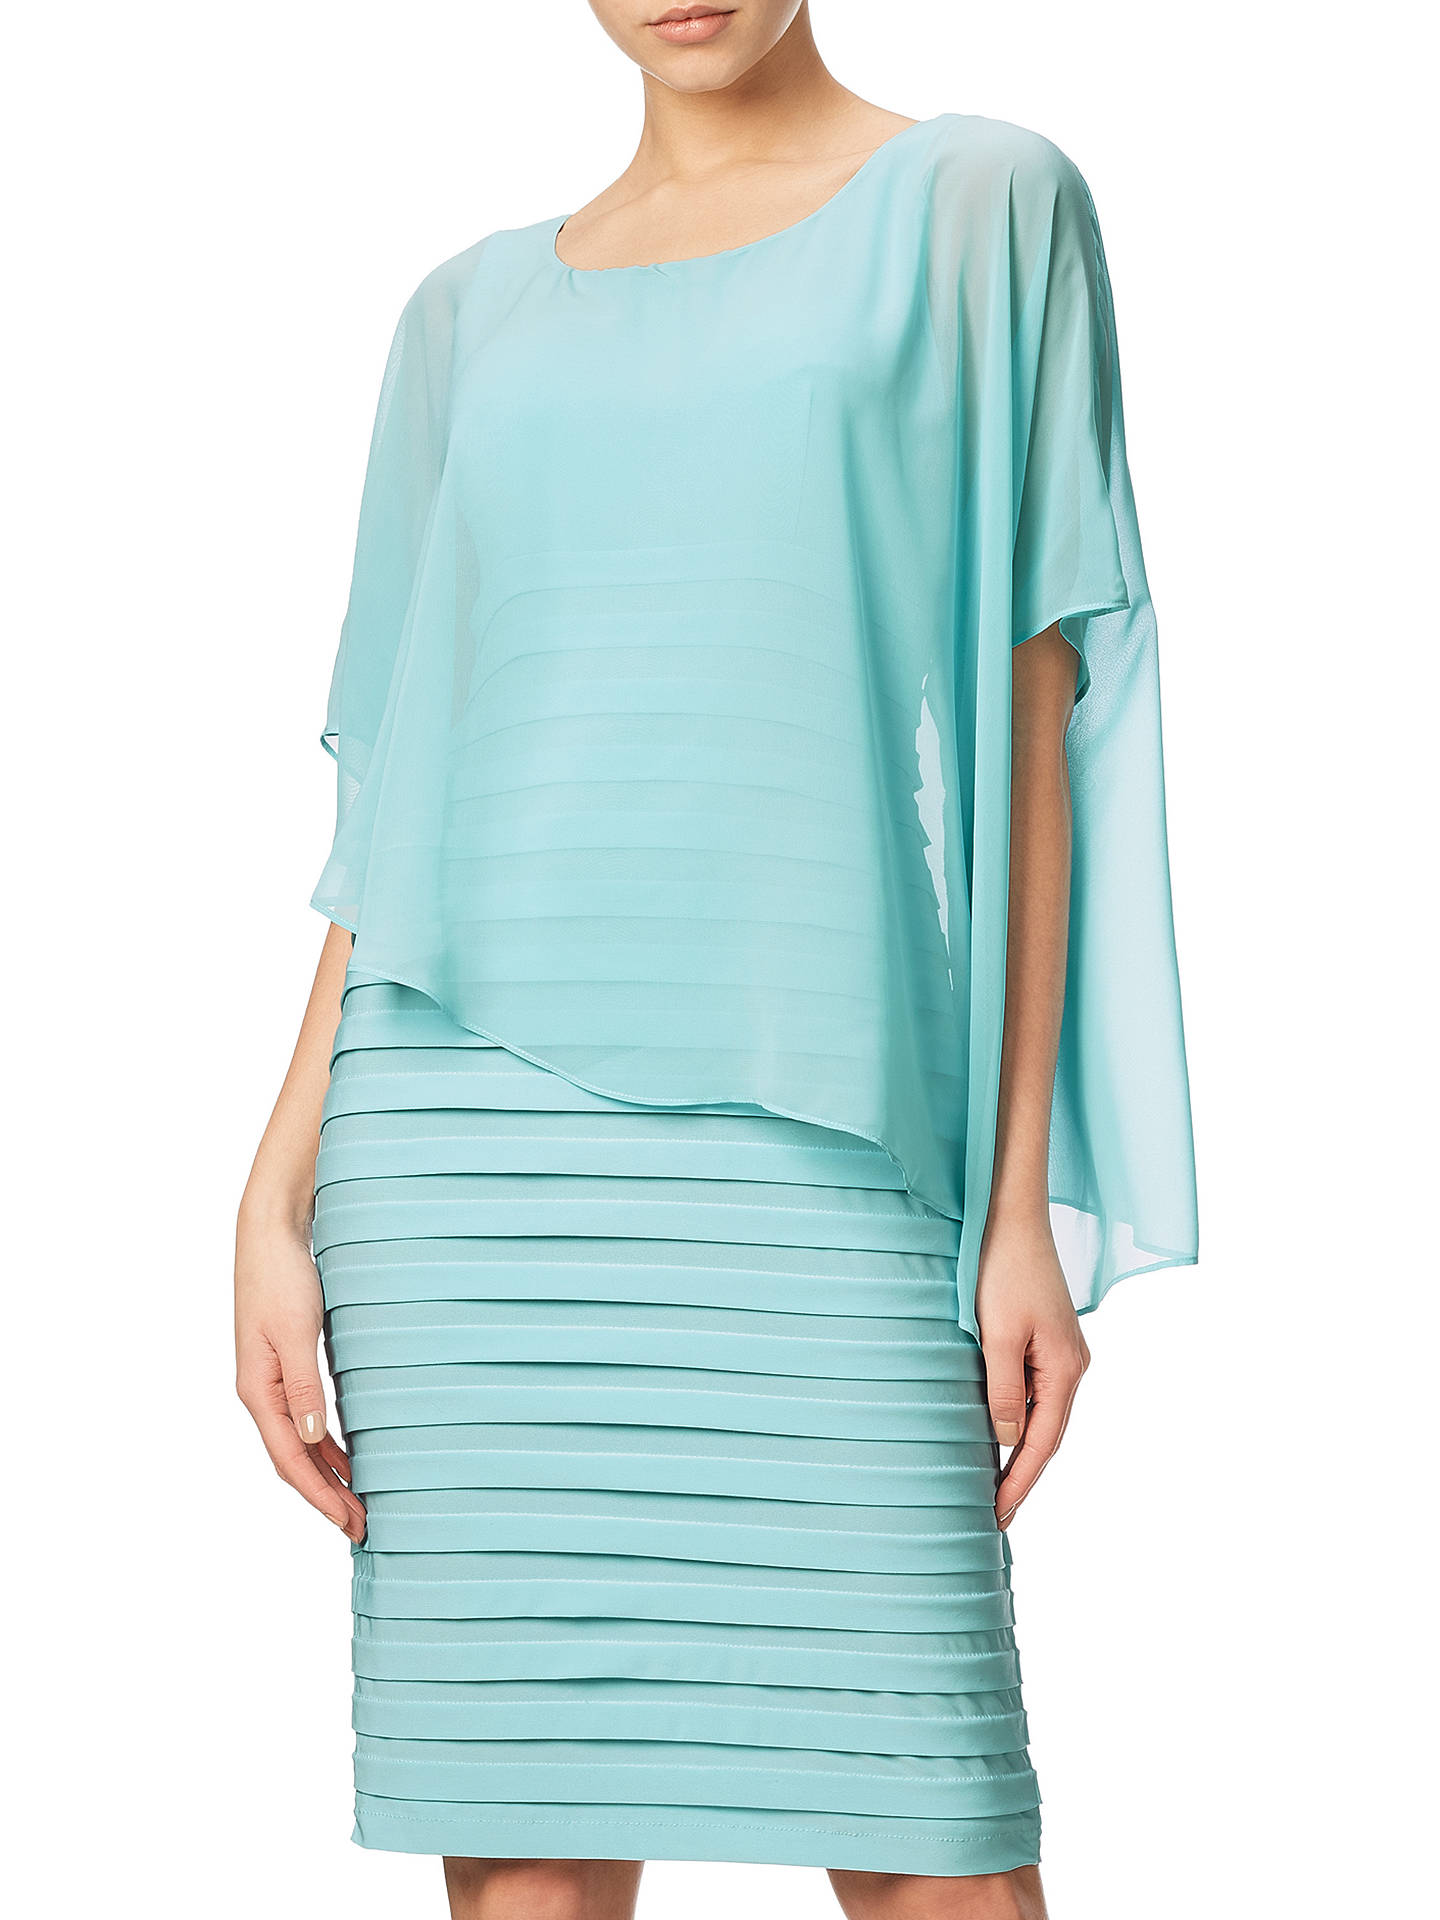 39e4f656f846 Buy Adrianna Papell Banded Dress With Chiffon Overlay, Sky, 8 Online at  johnlewis.